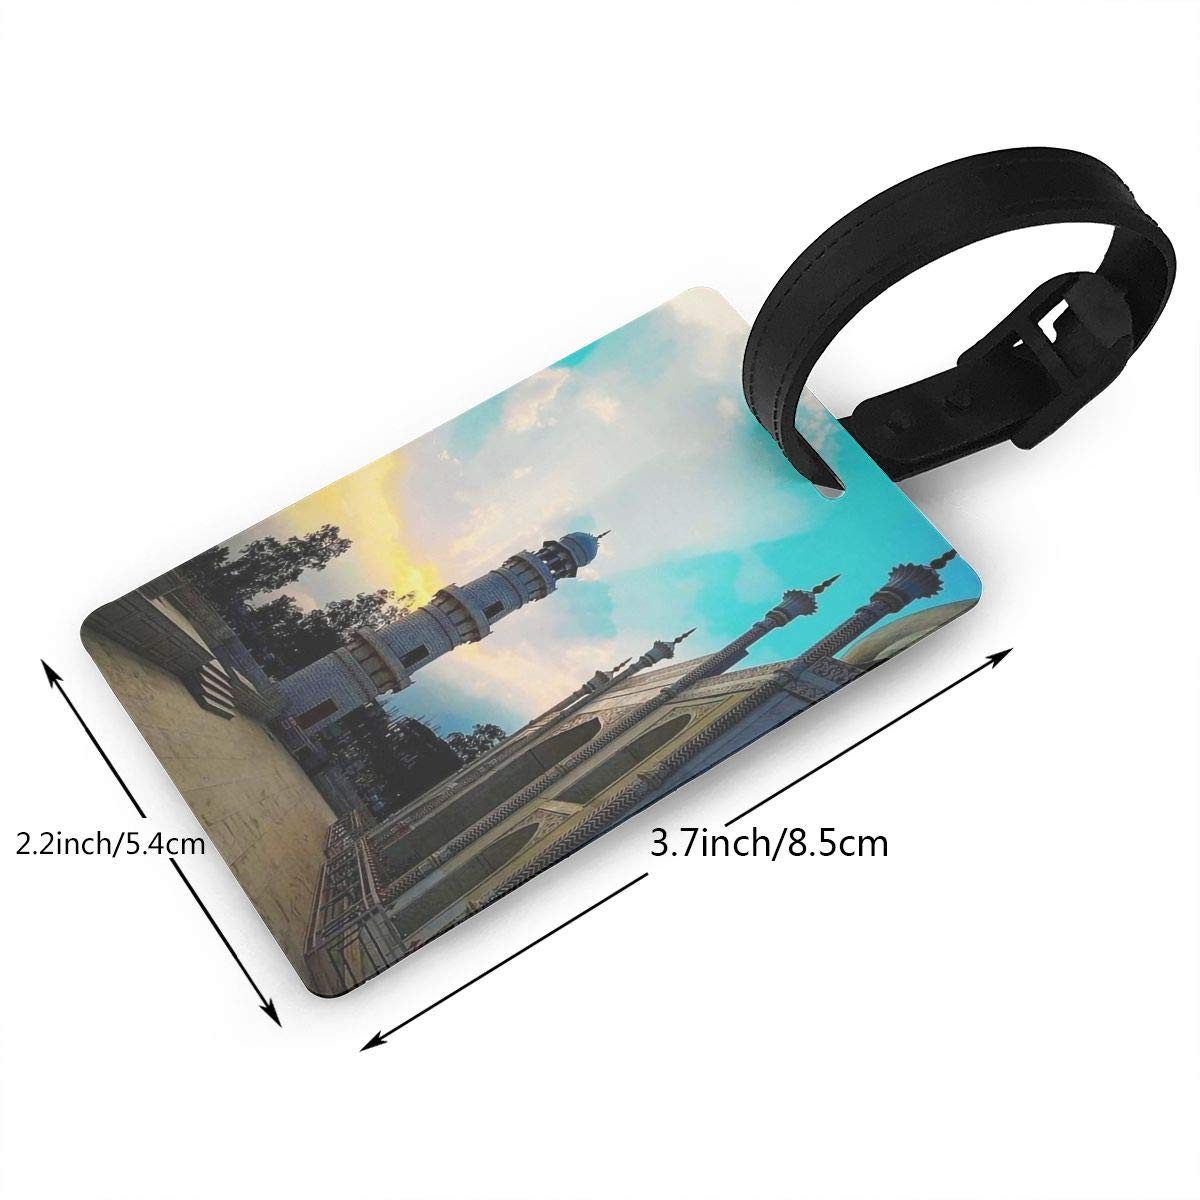 Taj Mahal Baggage Tag For Travel Tags Accessories 2 Pack Luggage Tags